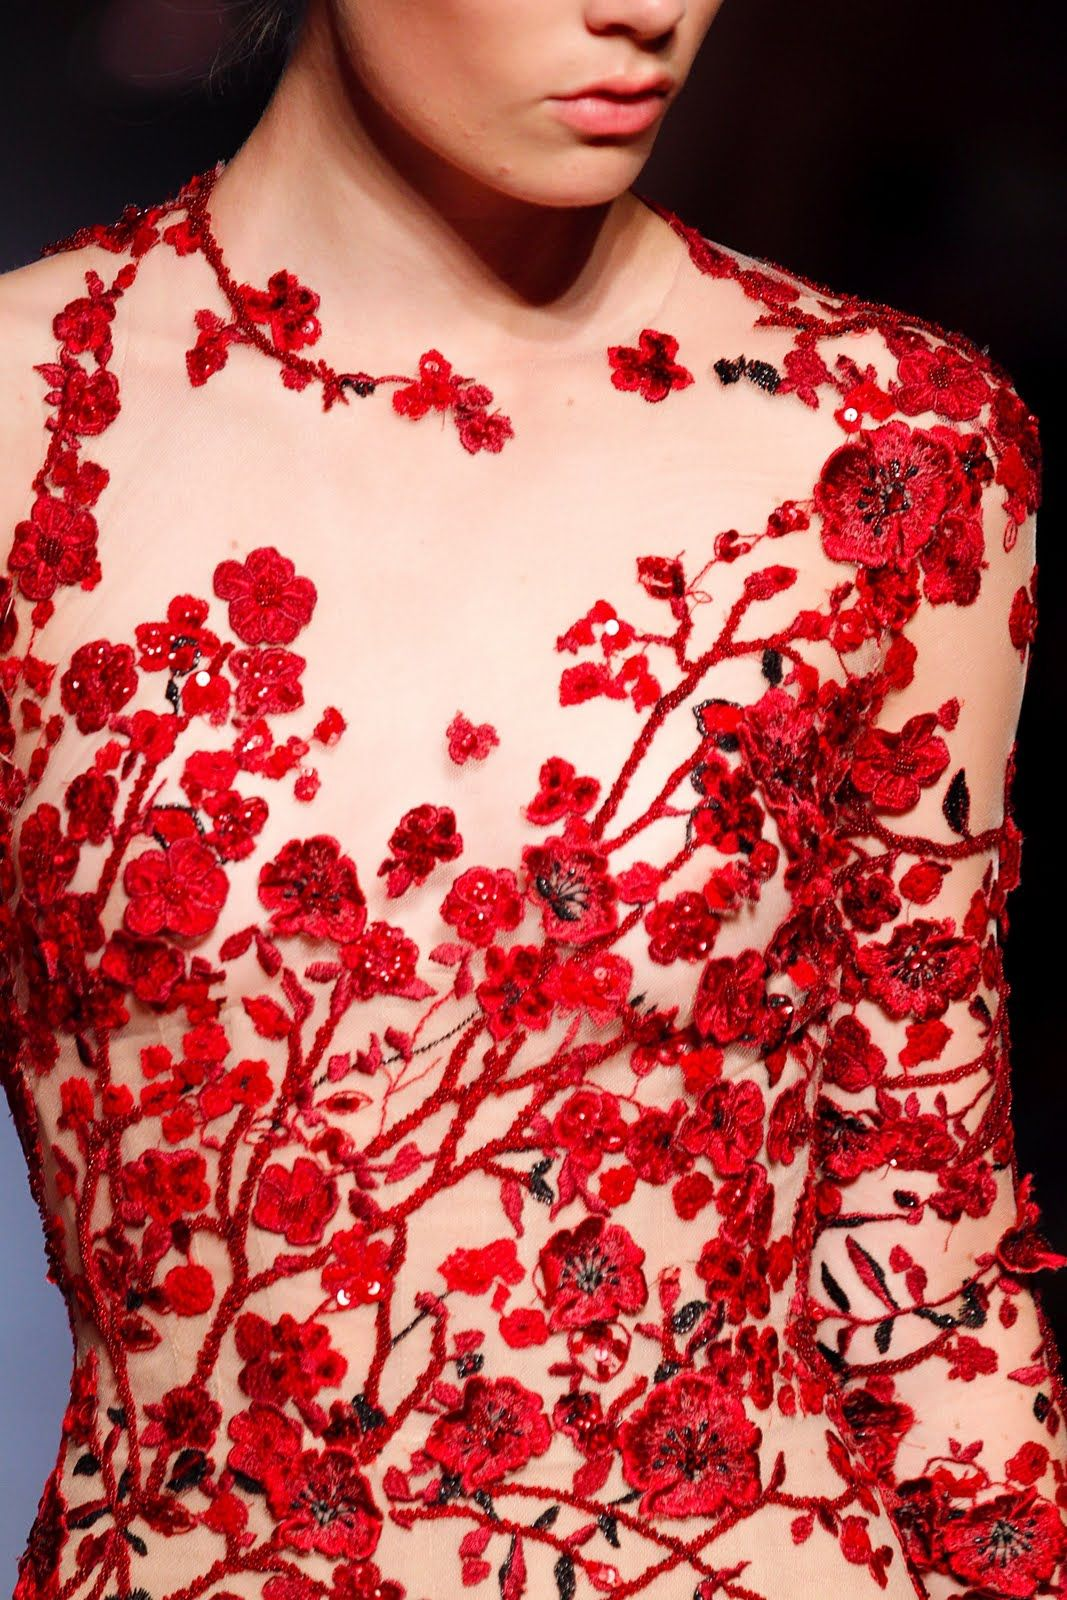 Zuhair Murad Couture Fall Winter 2011